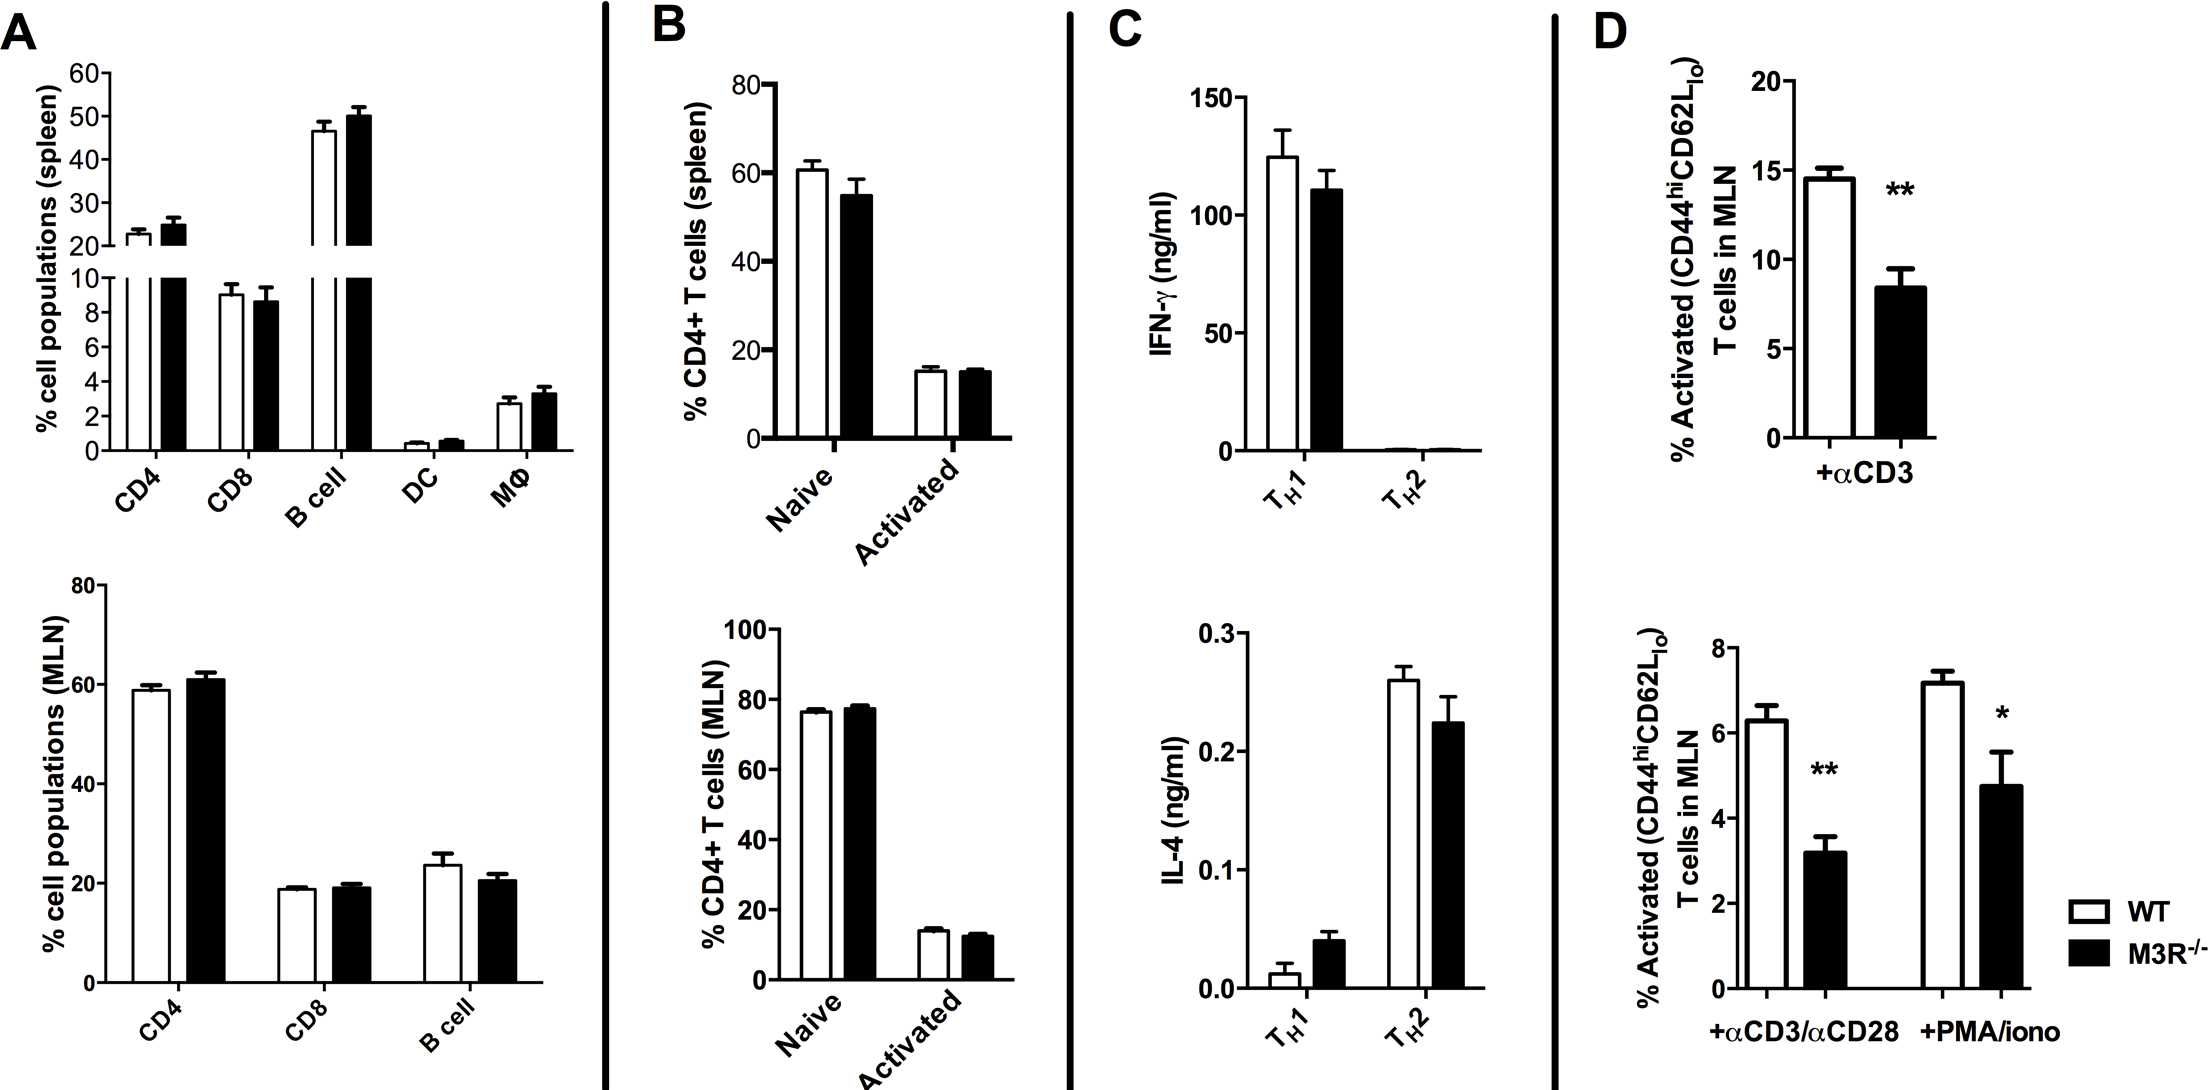 Naïve M3R<sup>−/−</sup> mice have an equivalent composition of immune cells as WT BALB/c mice but M3R<sup>−/−</sup> CD4 T cells have an impaired ability to activate.